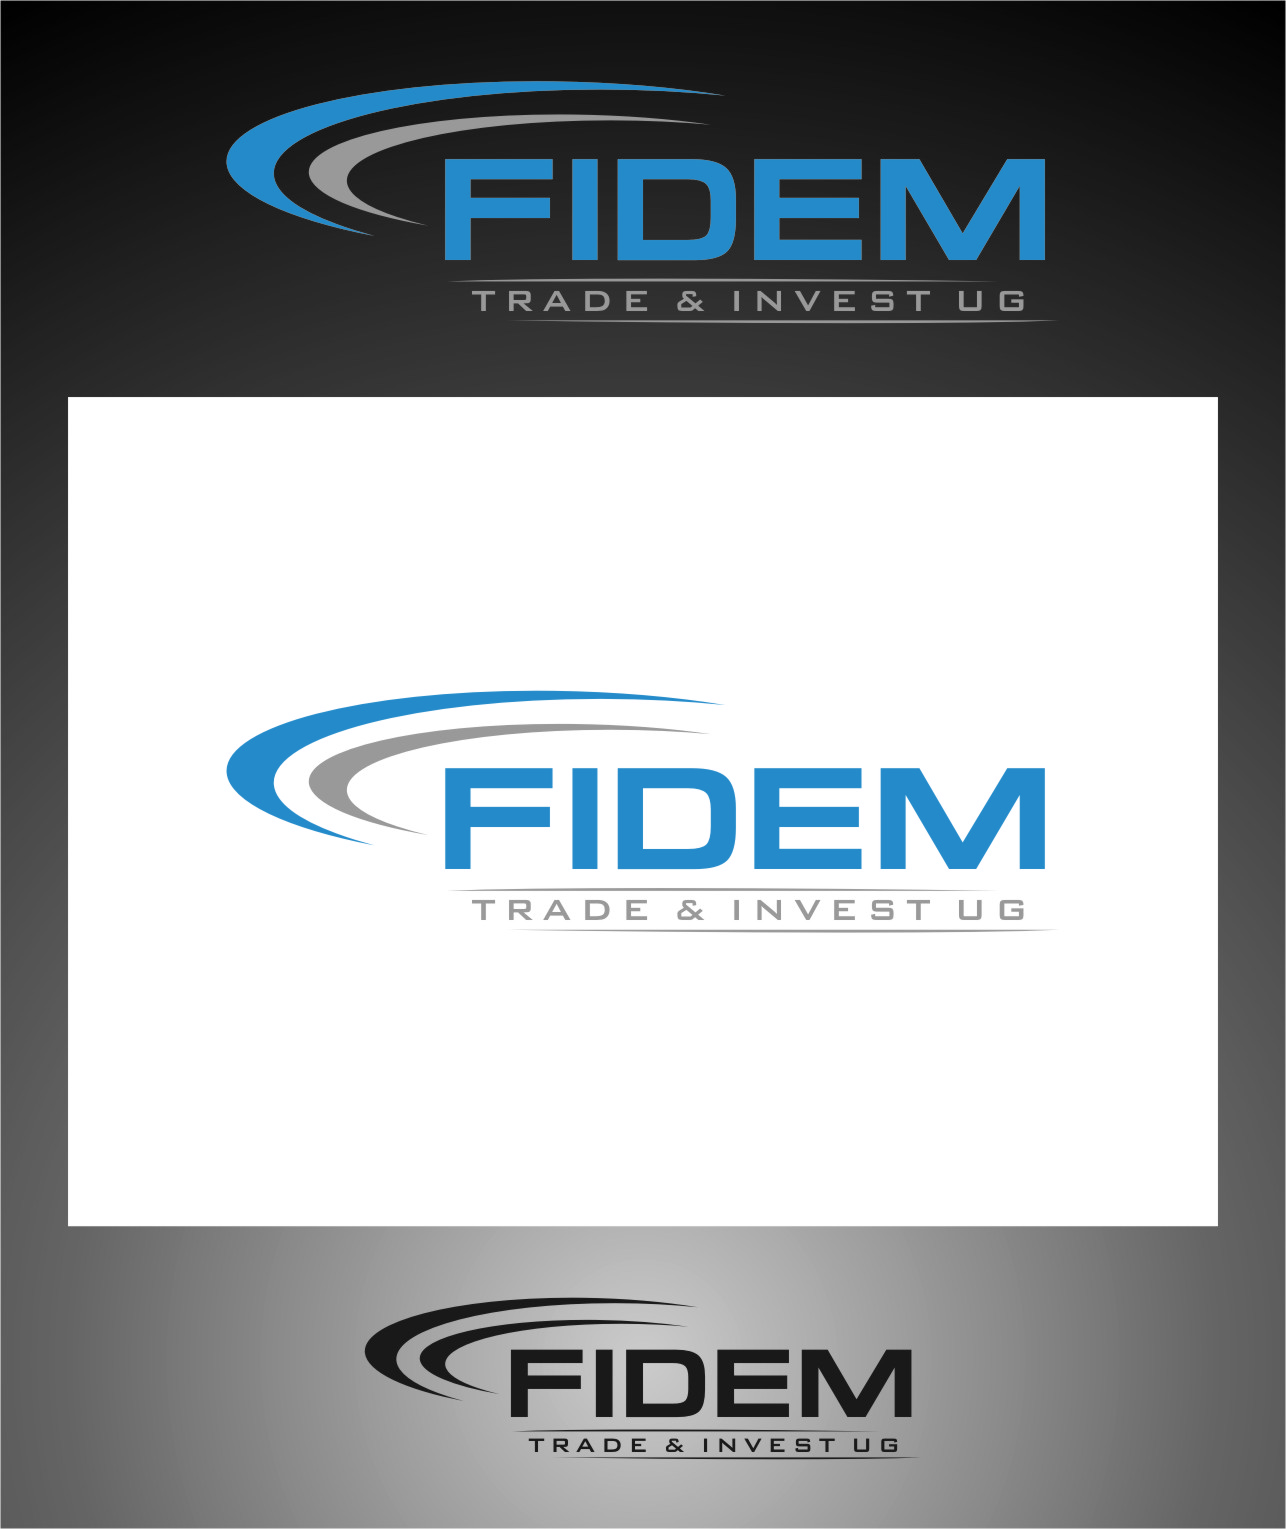 Logo Design by RasYa Muhammad Athaya - Entry No. 355 in the Logo Design Contest Professional Logo Design for FIDEM Trade & Invest UG.